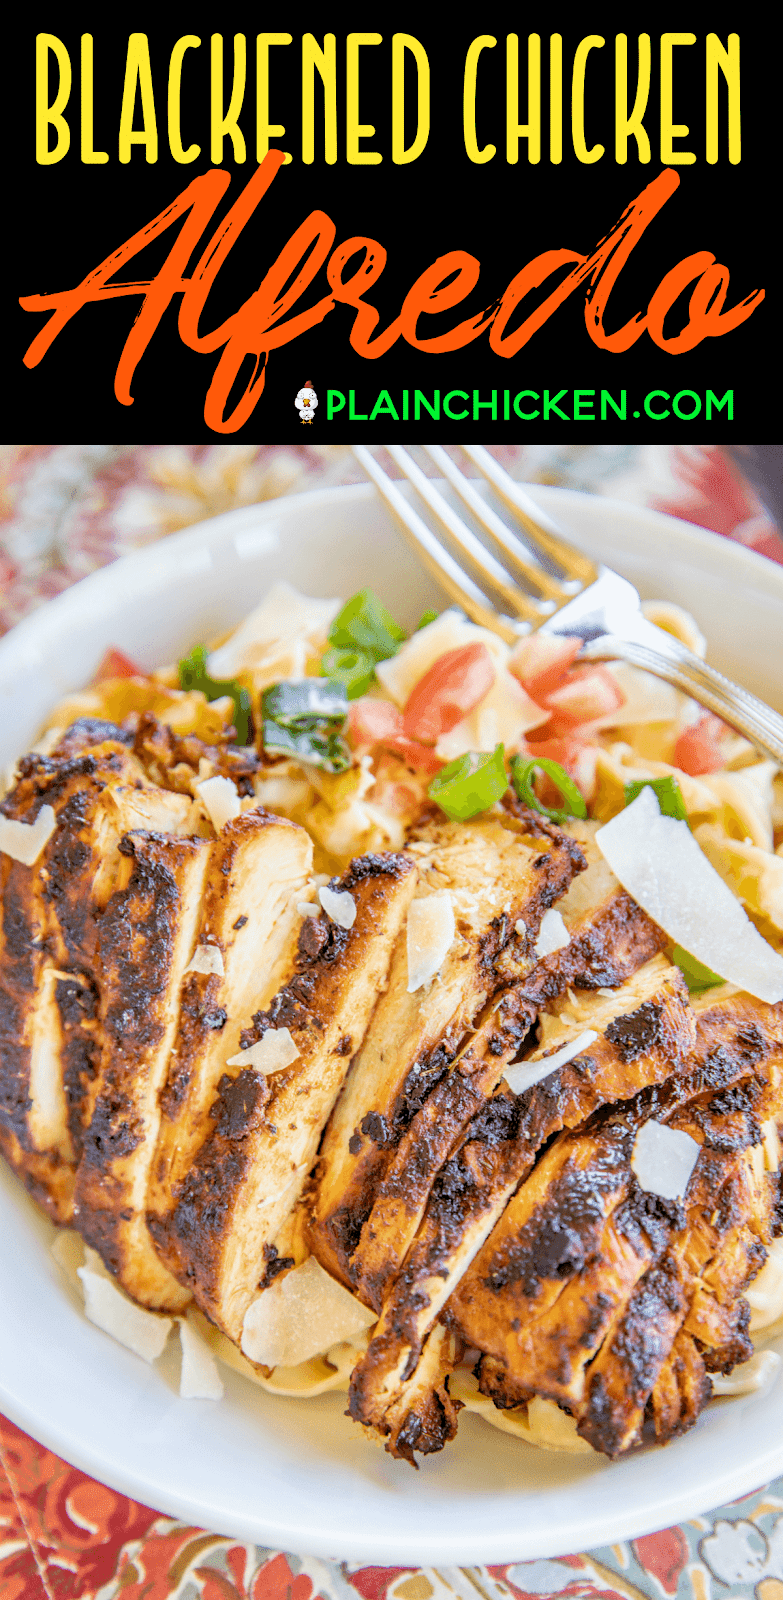 Blackened Chicken Alfredo - Plain Chicken